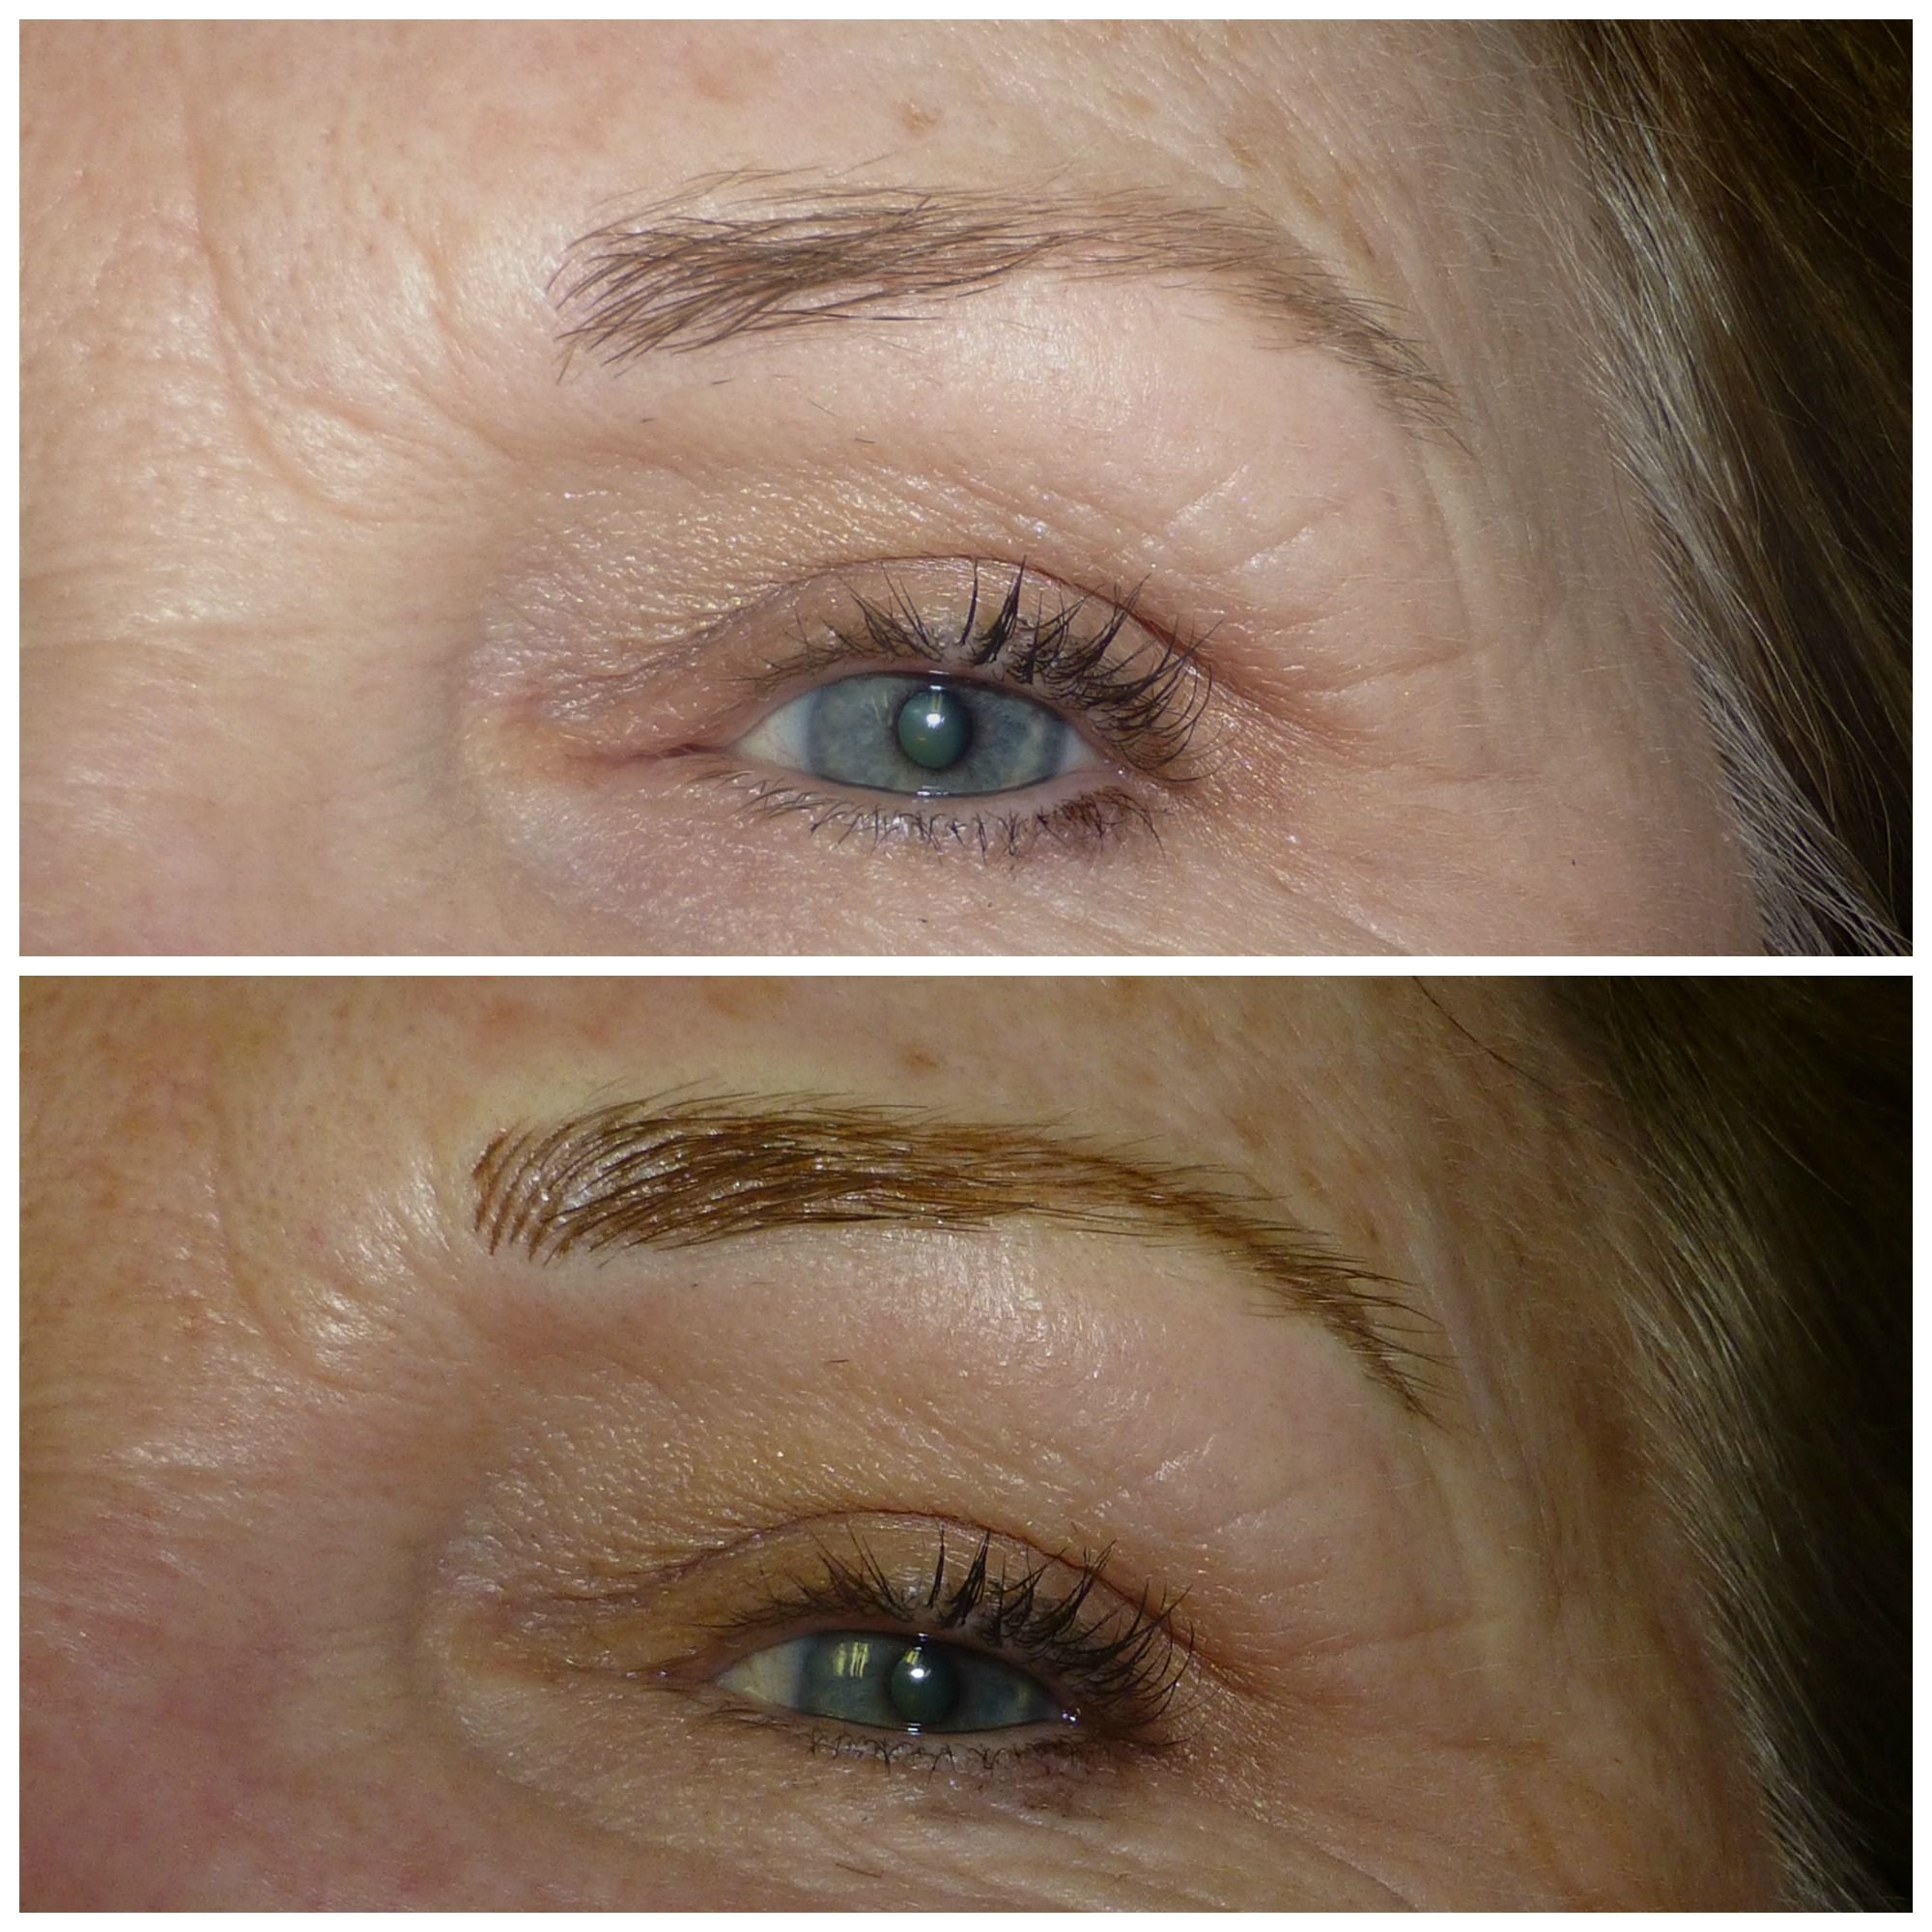 Semi Permanent Makeup is great option for all ages alike